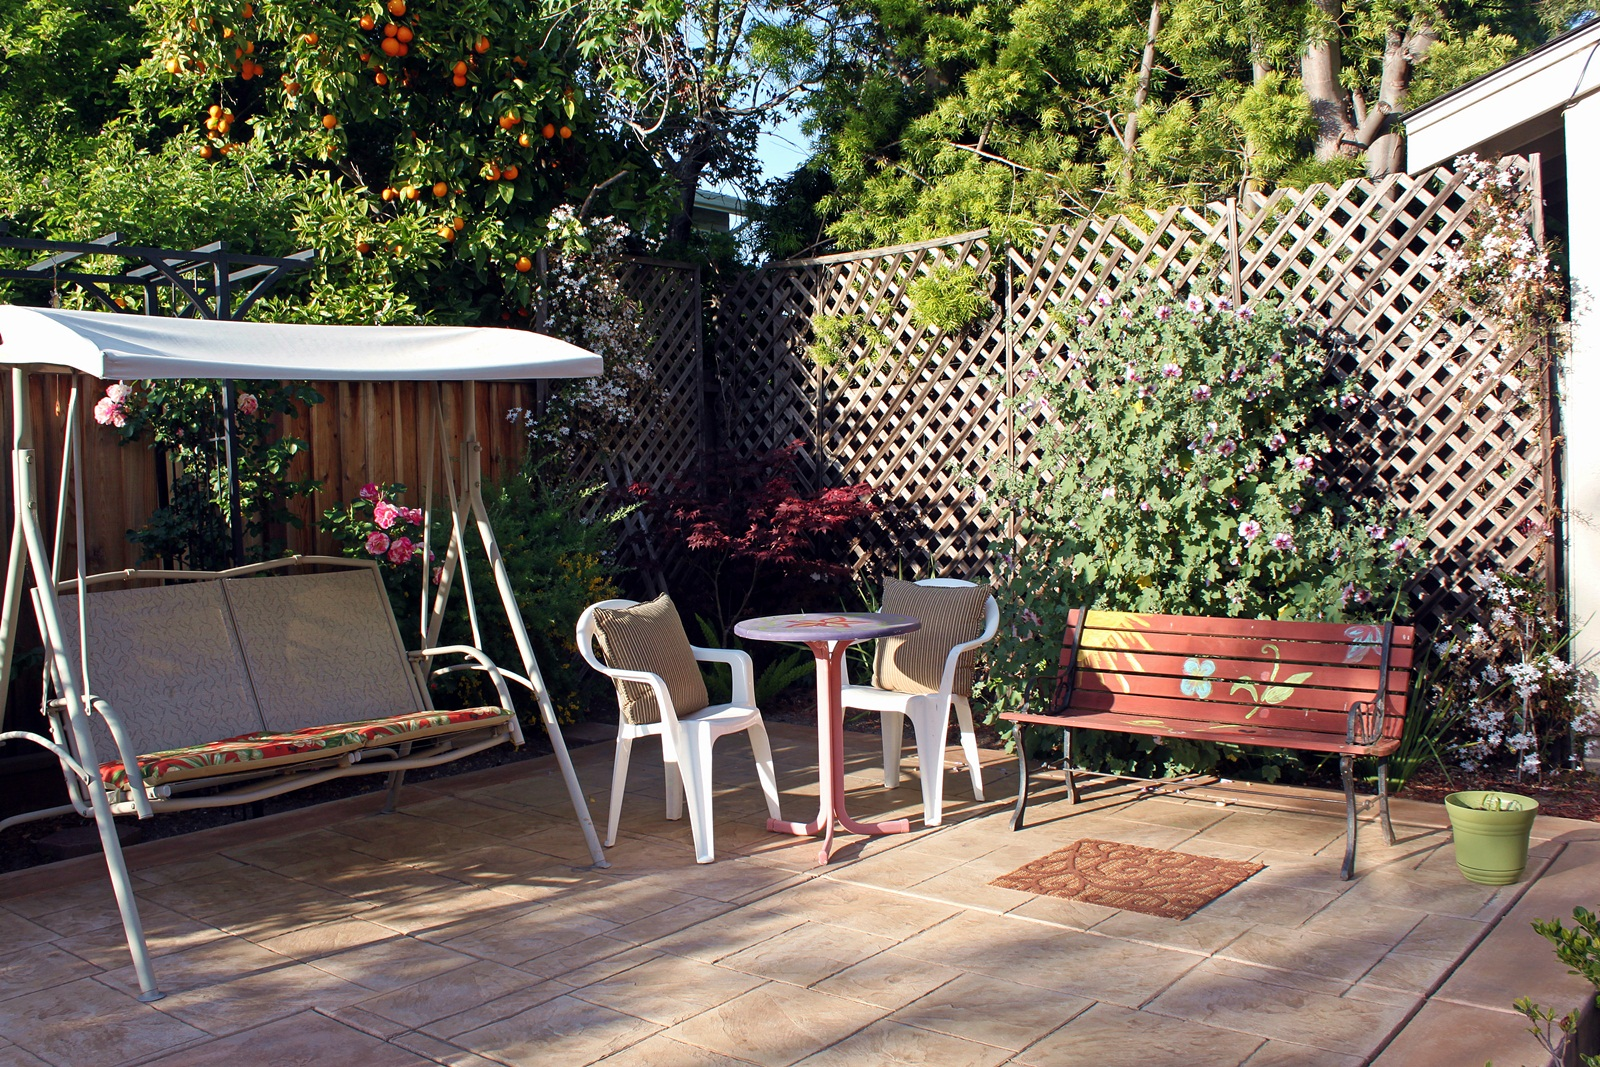 Patio Design on a Budget | Fun and Food Cafe on Courtyard Ideas On A Budget id=38563